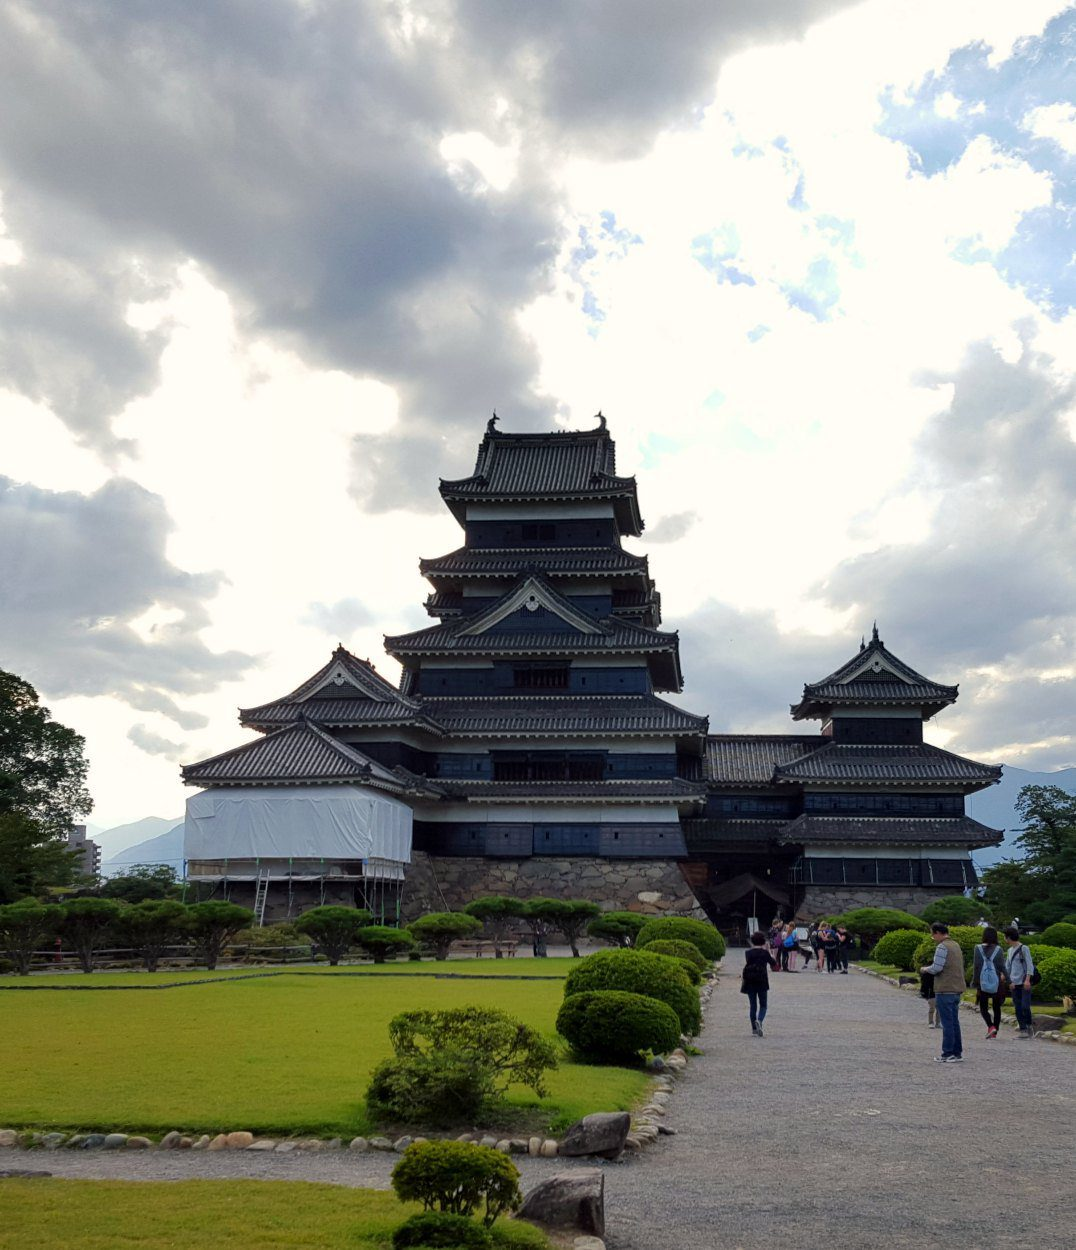 Another View of Matsumoto Castle, Japan